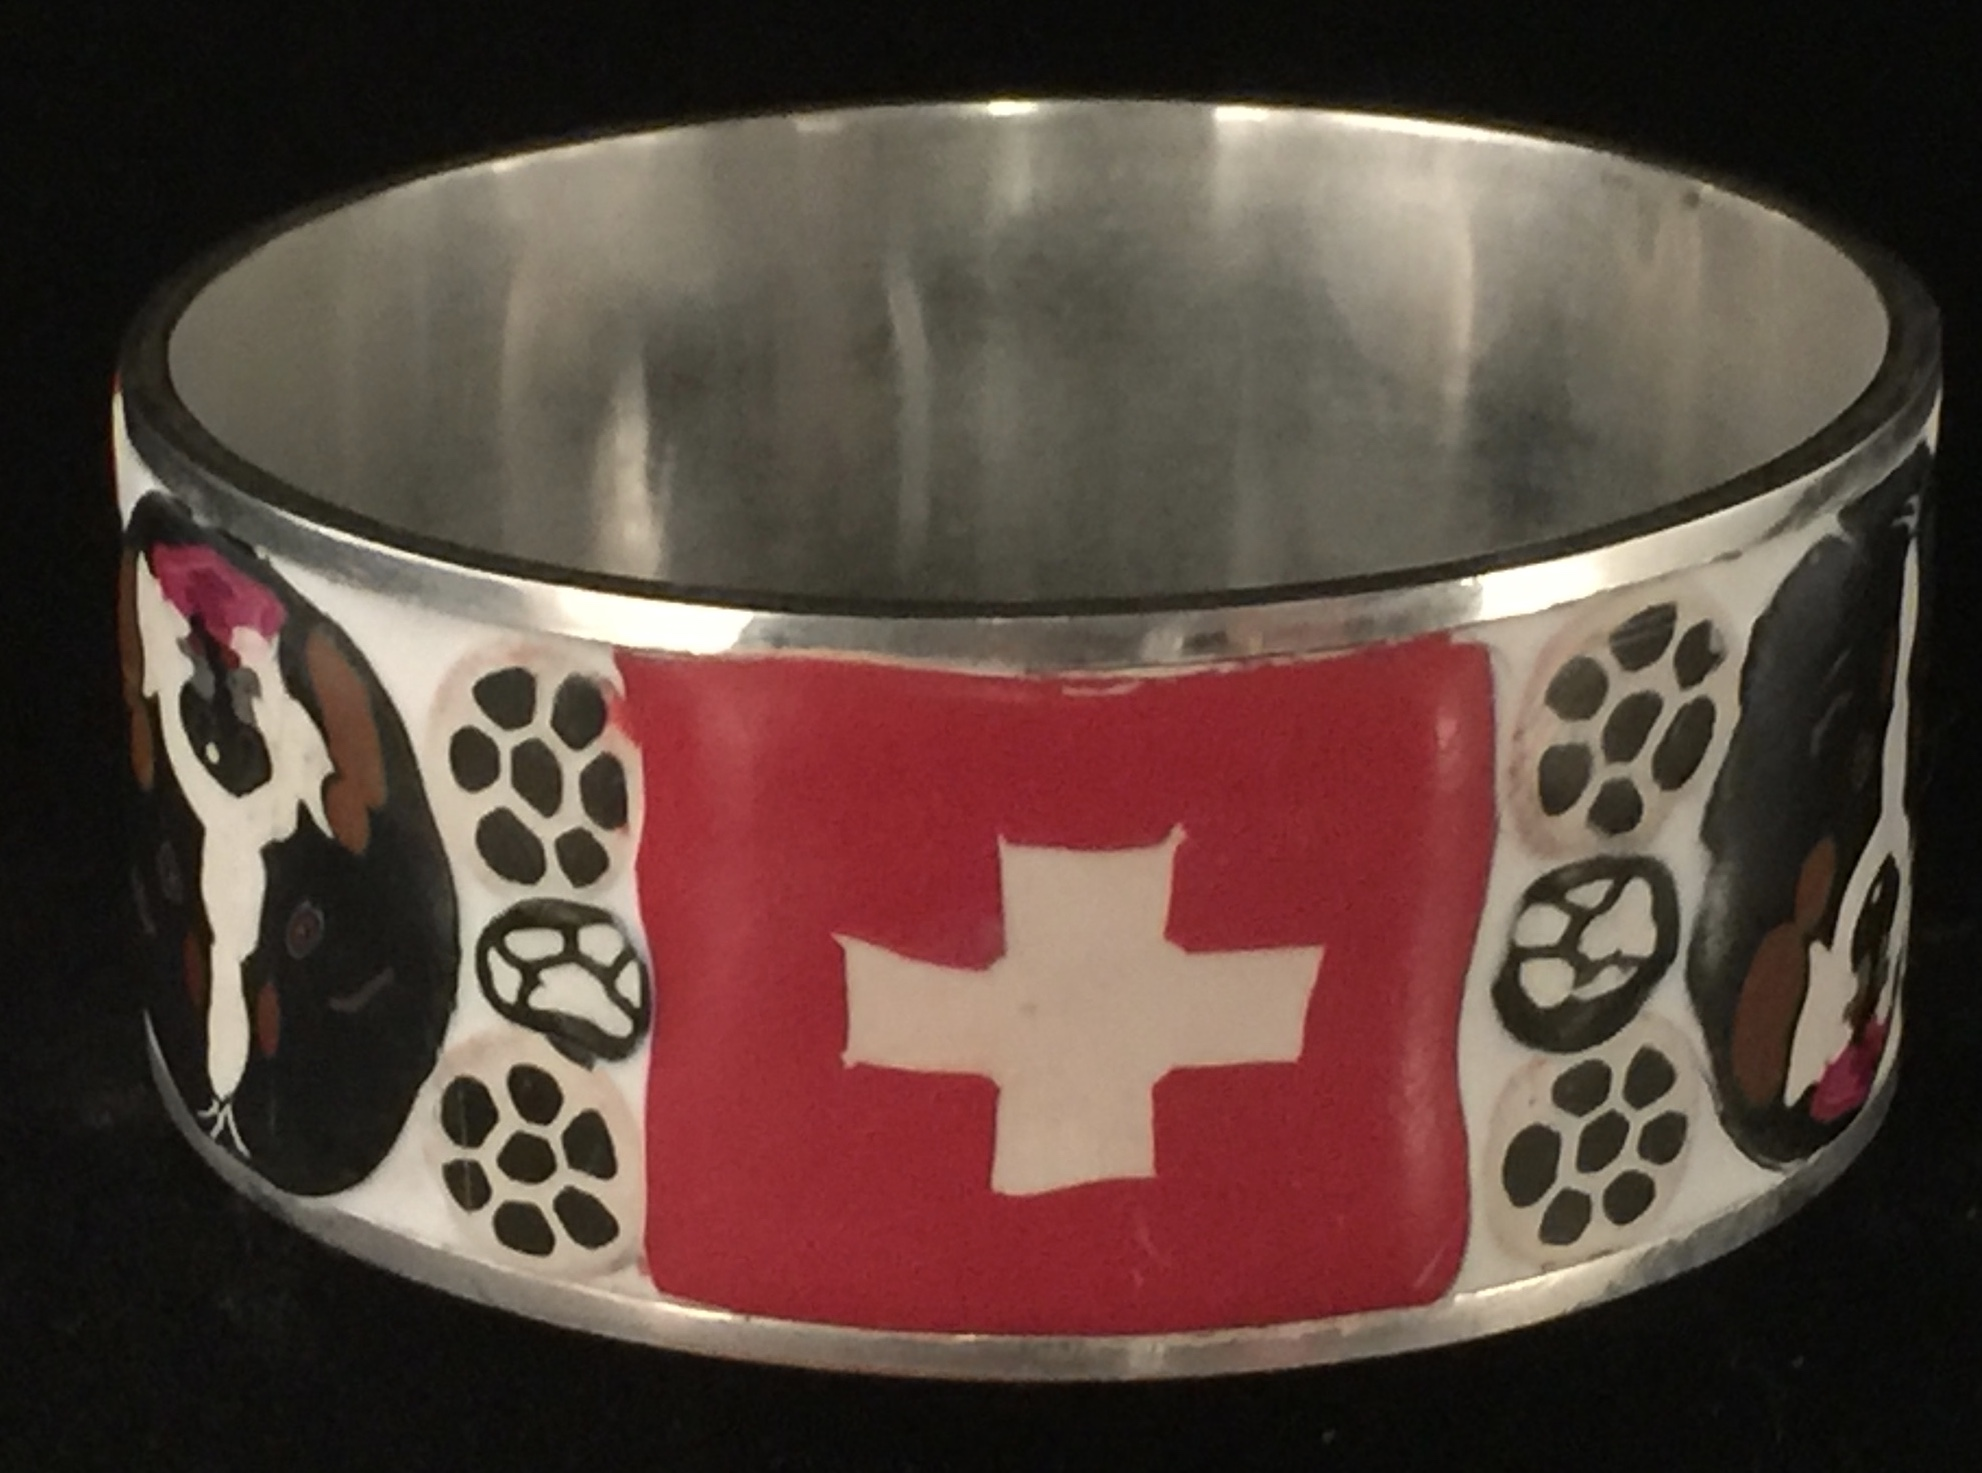 Ups & Downs Berner Bling Bangle (Size Medium) Please check sizing chart  prior to order  — Liane Weyers